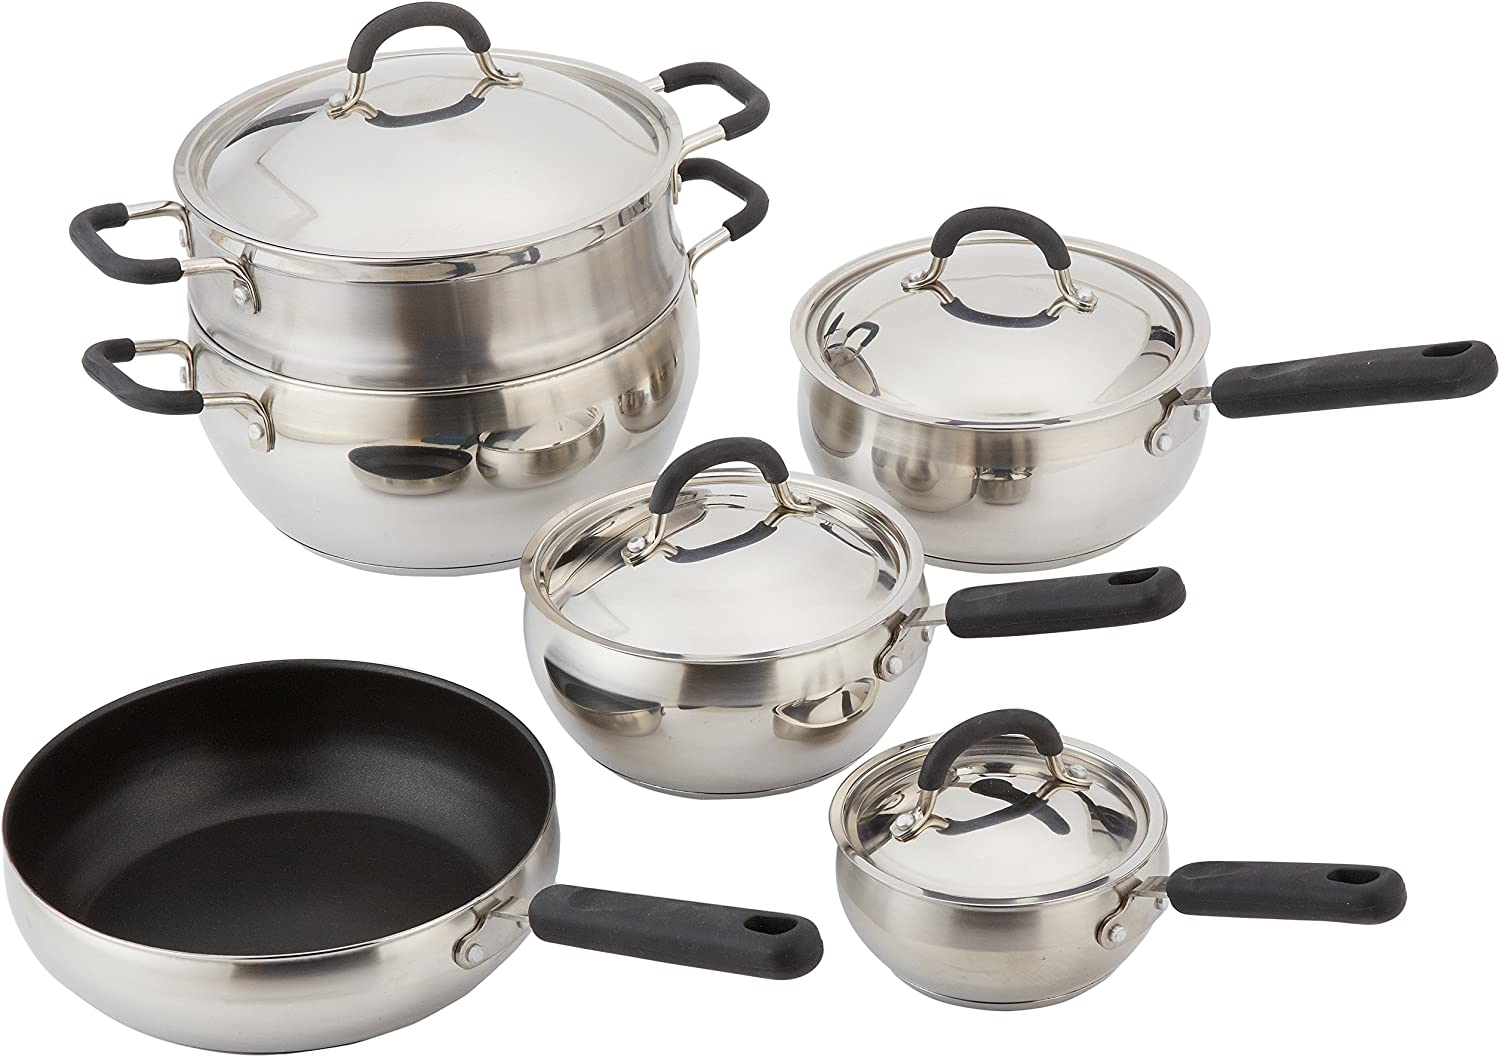 10 Piece 18/10 Belly Shaped Cookware Set w/ Encapsulated Base & Santoprene Handles